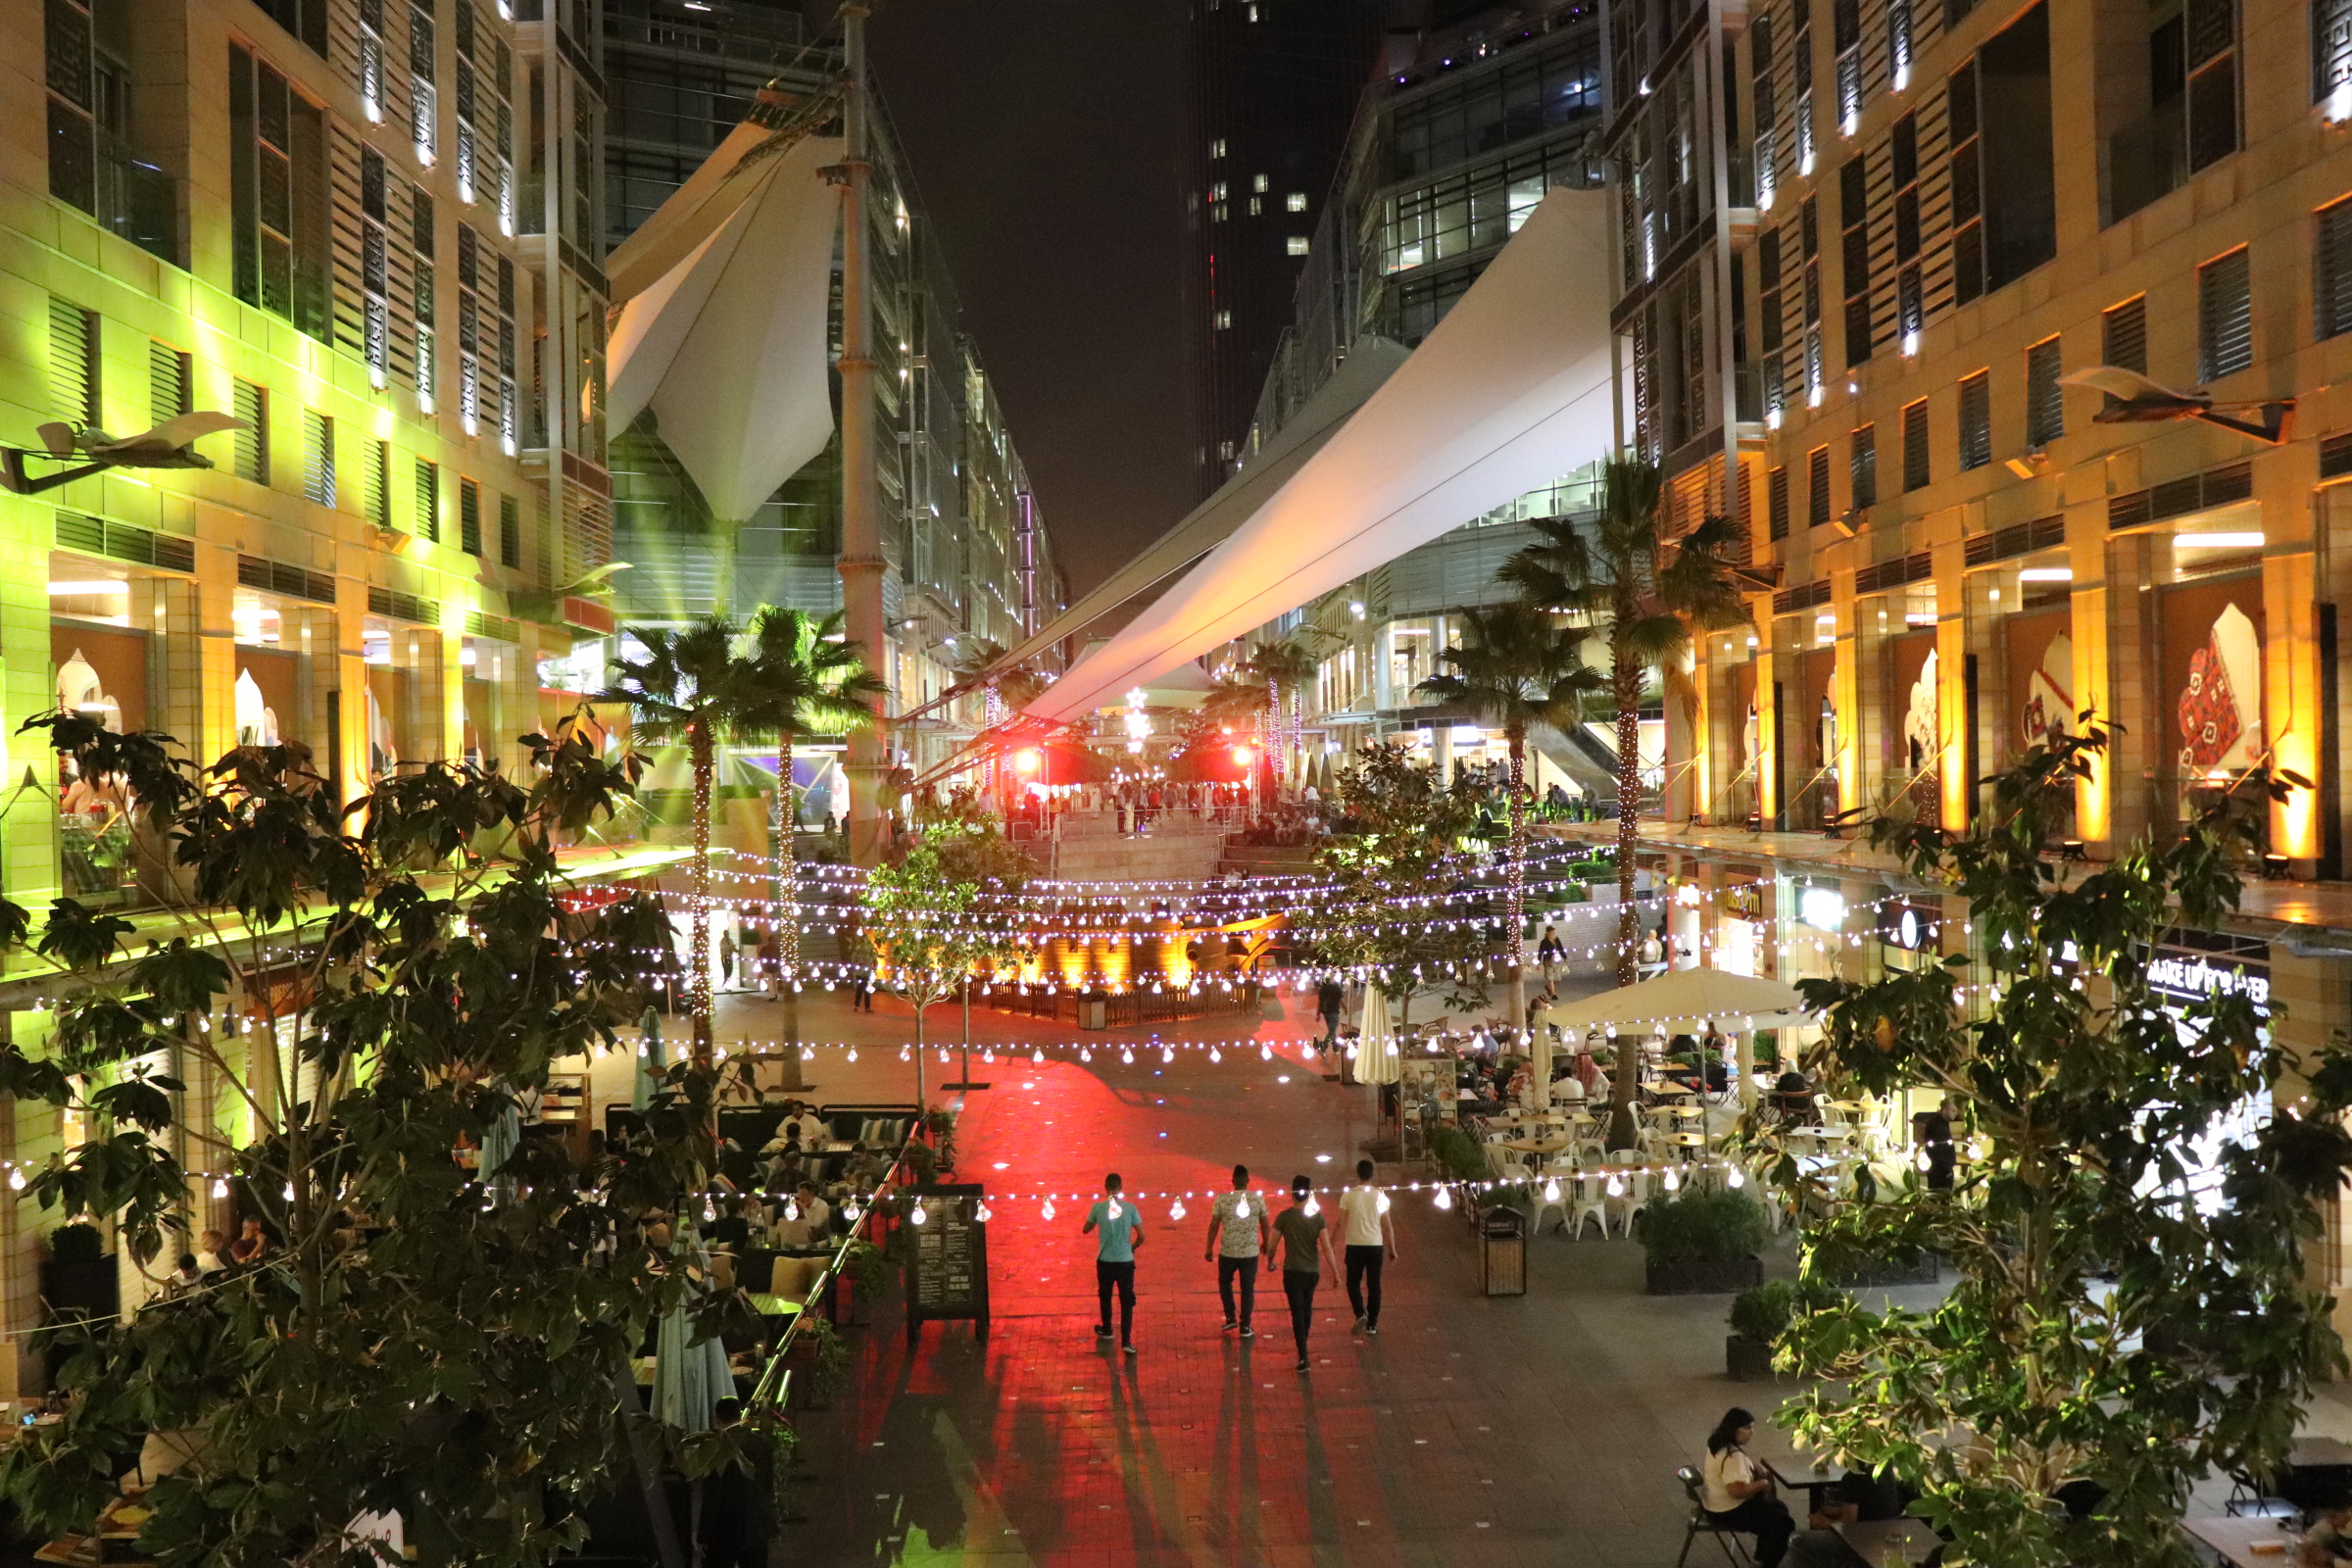 Photograph of a brightly lit boulevard at night.